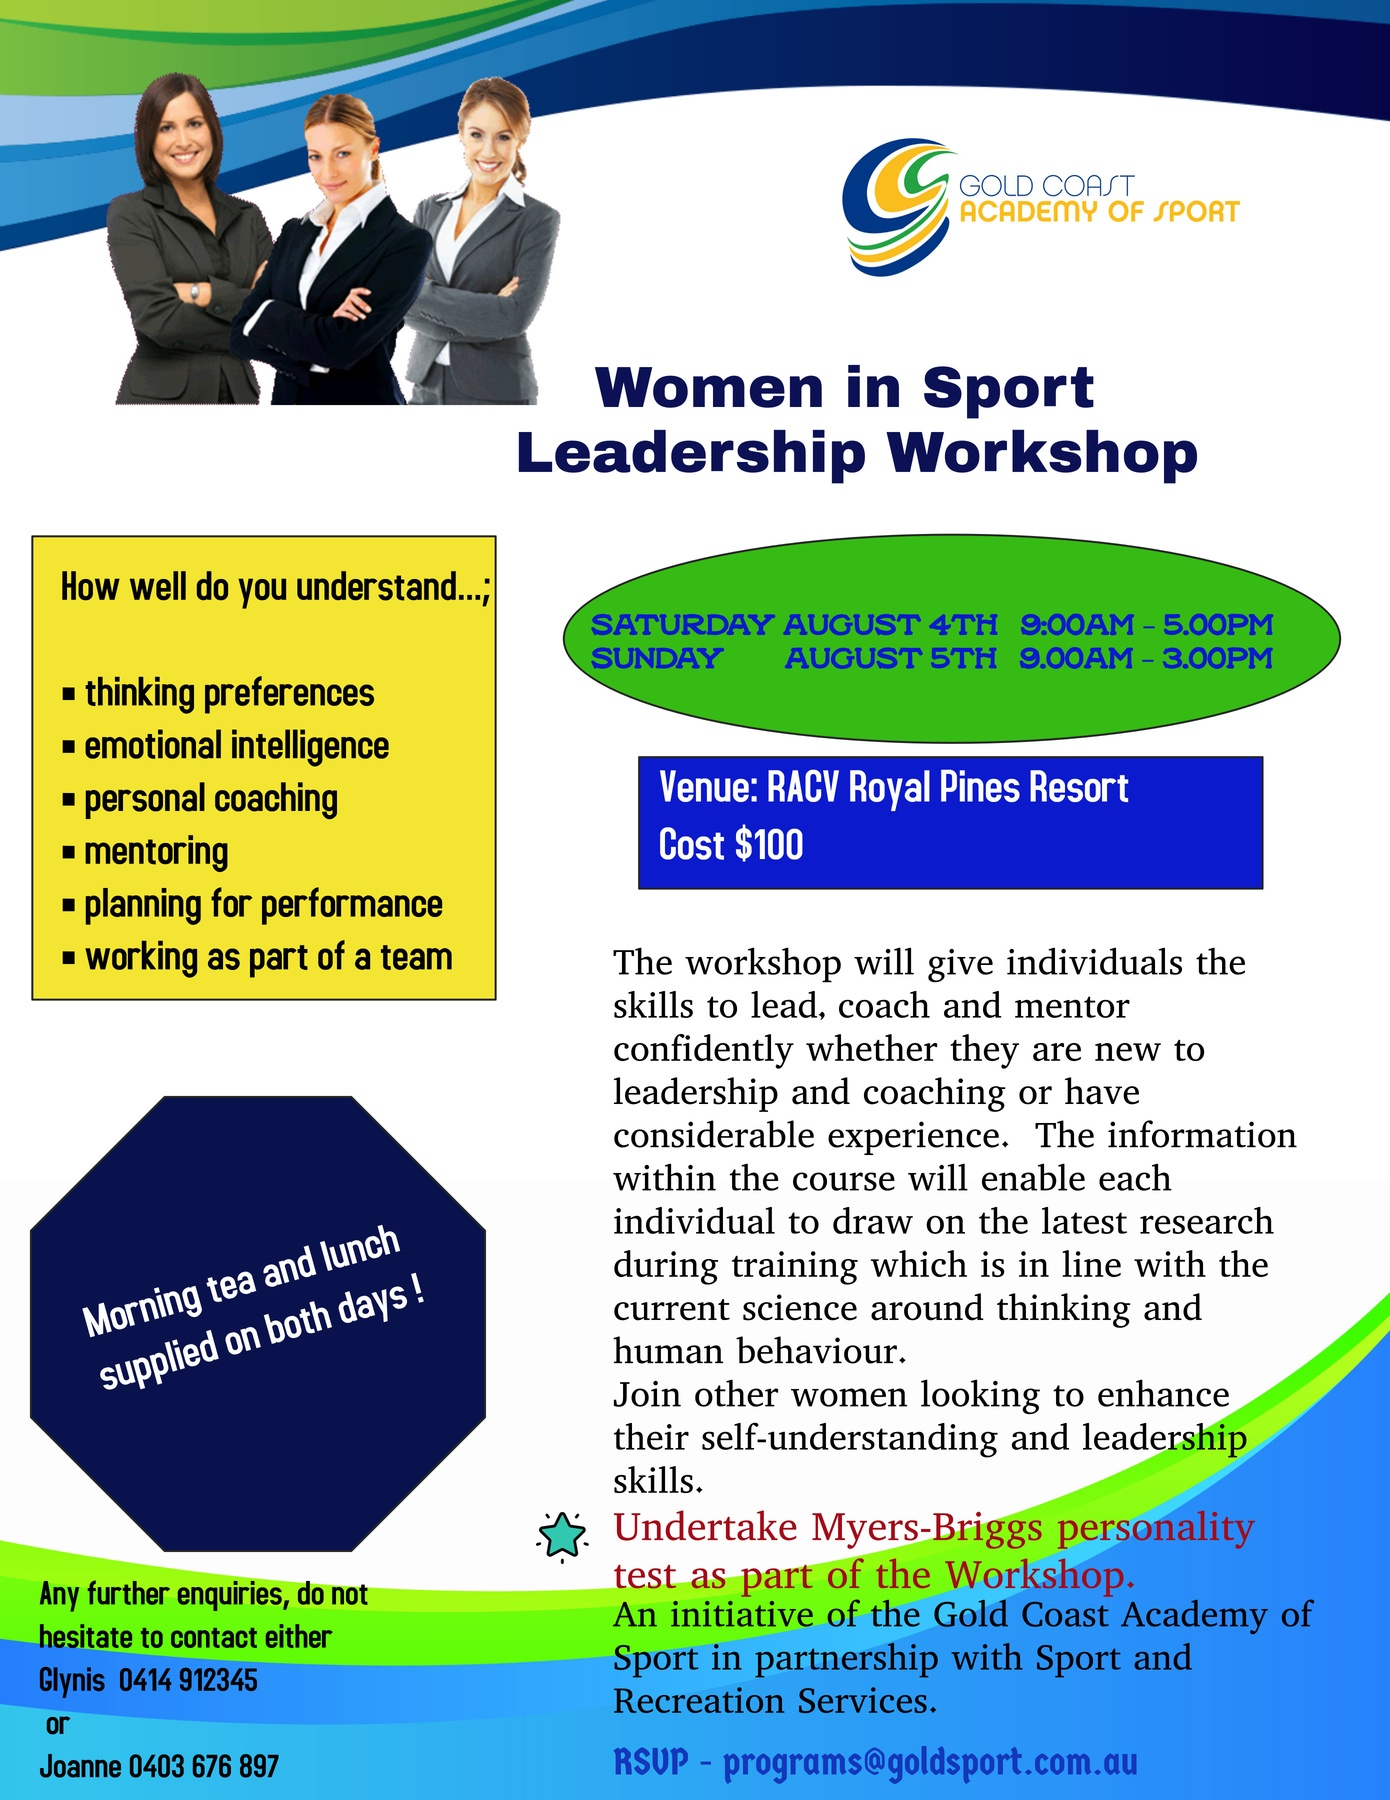 Women in Sport Weekend Workshop - Gold Coast Academy of Sport